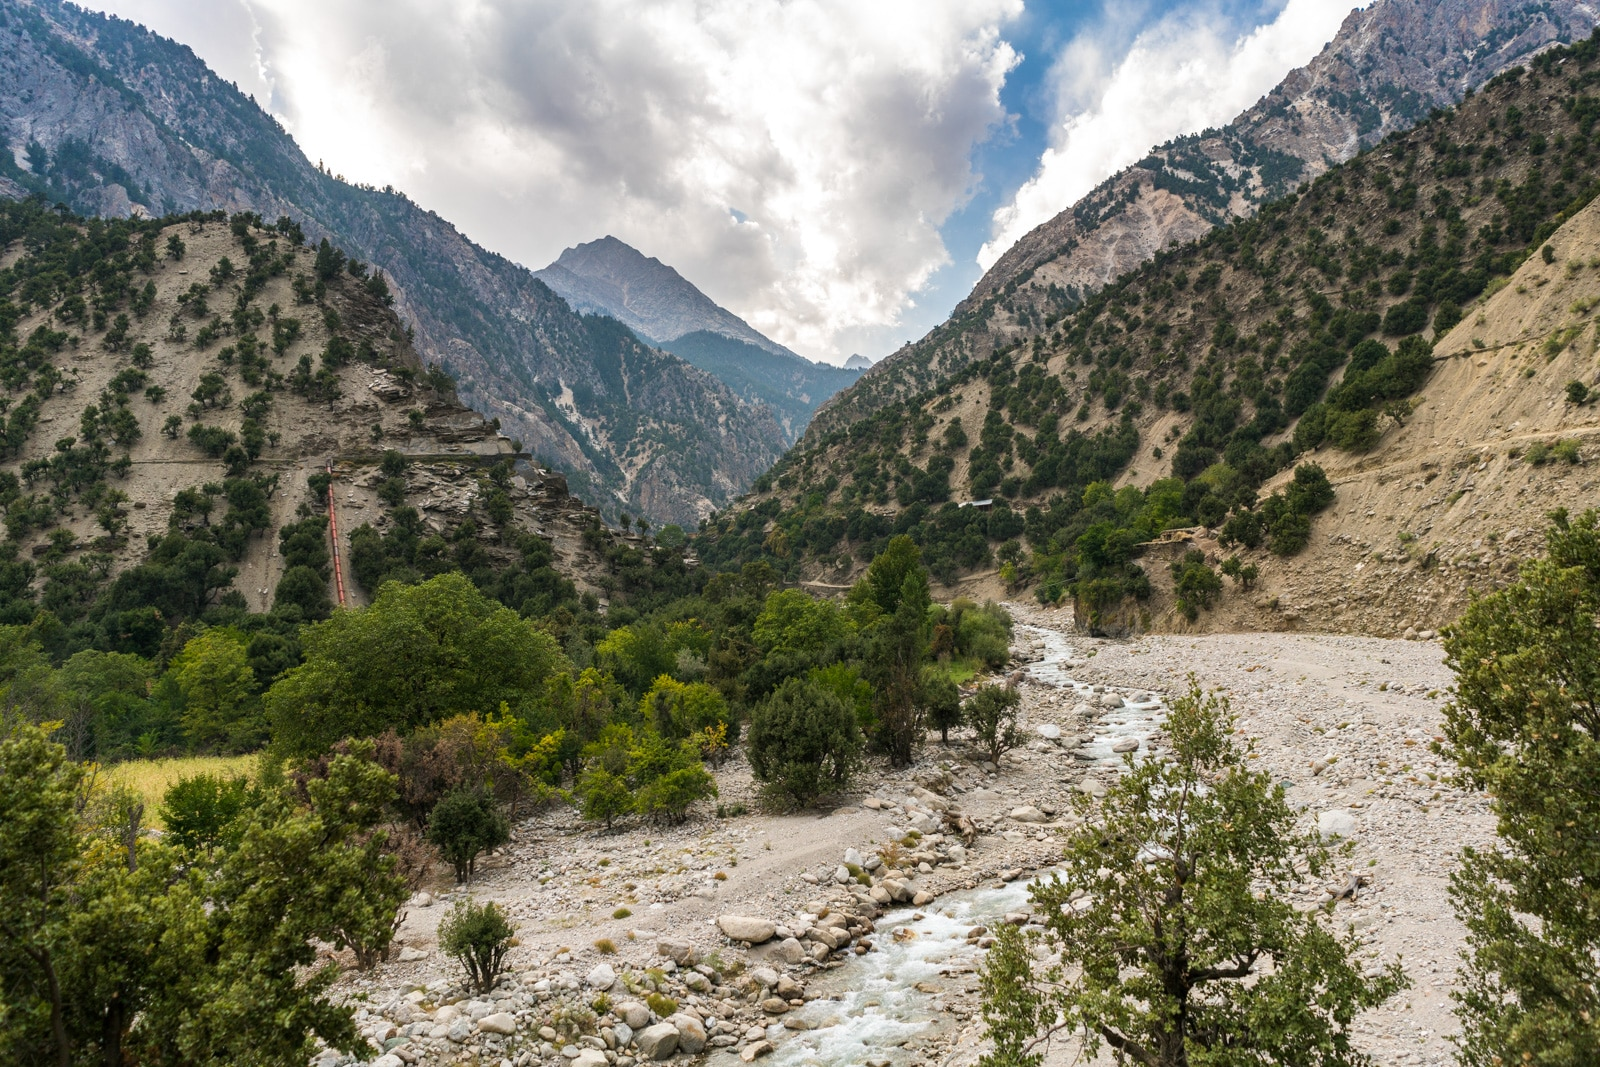 View of Rumboor Valley in Kalash, Pakistan